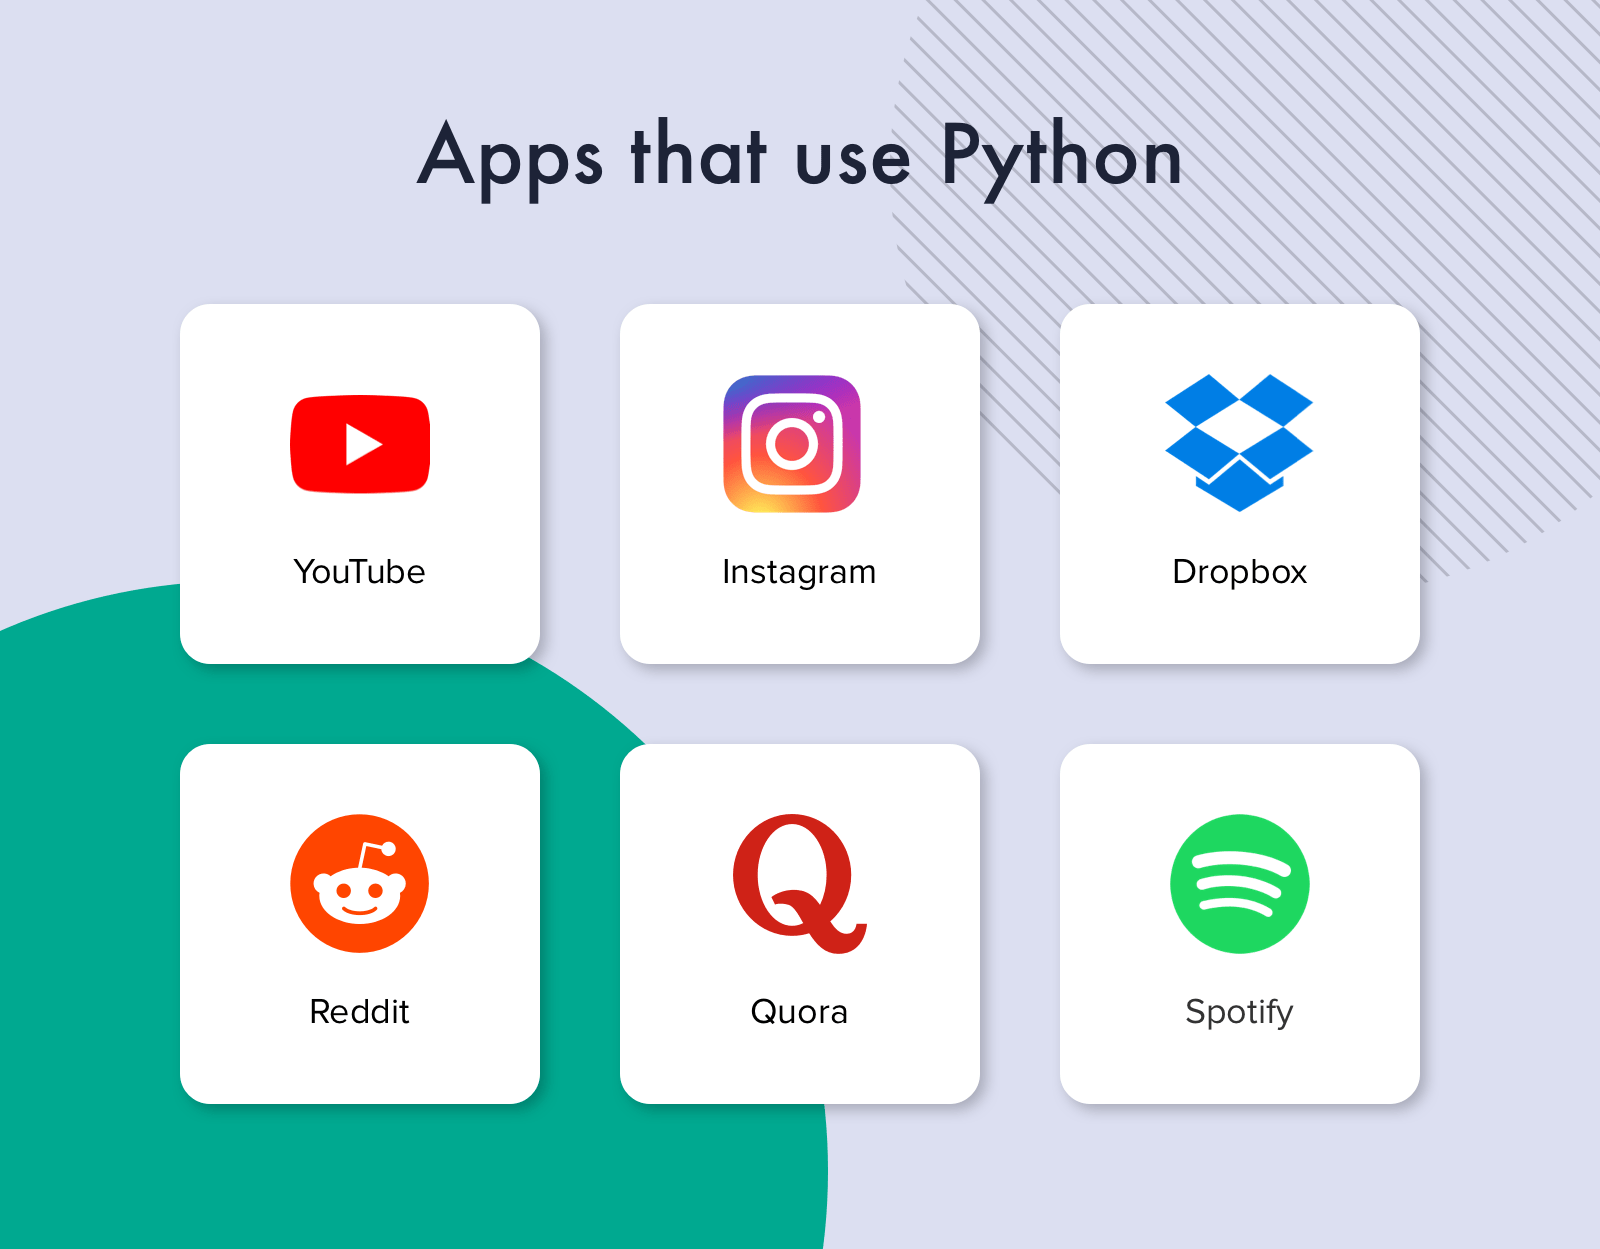 Apps that use Python